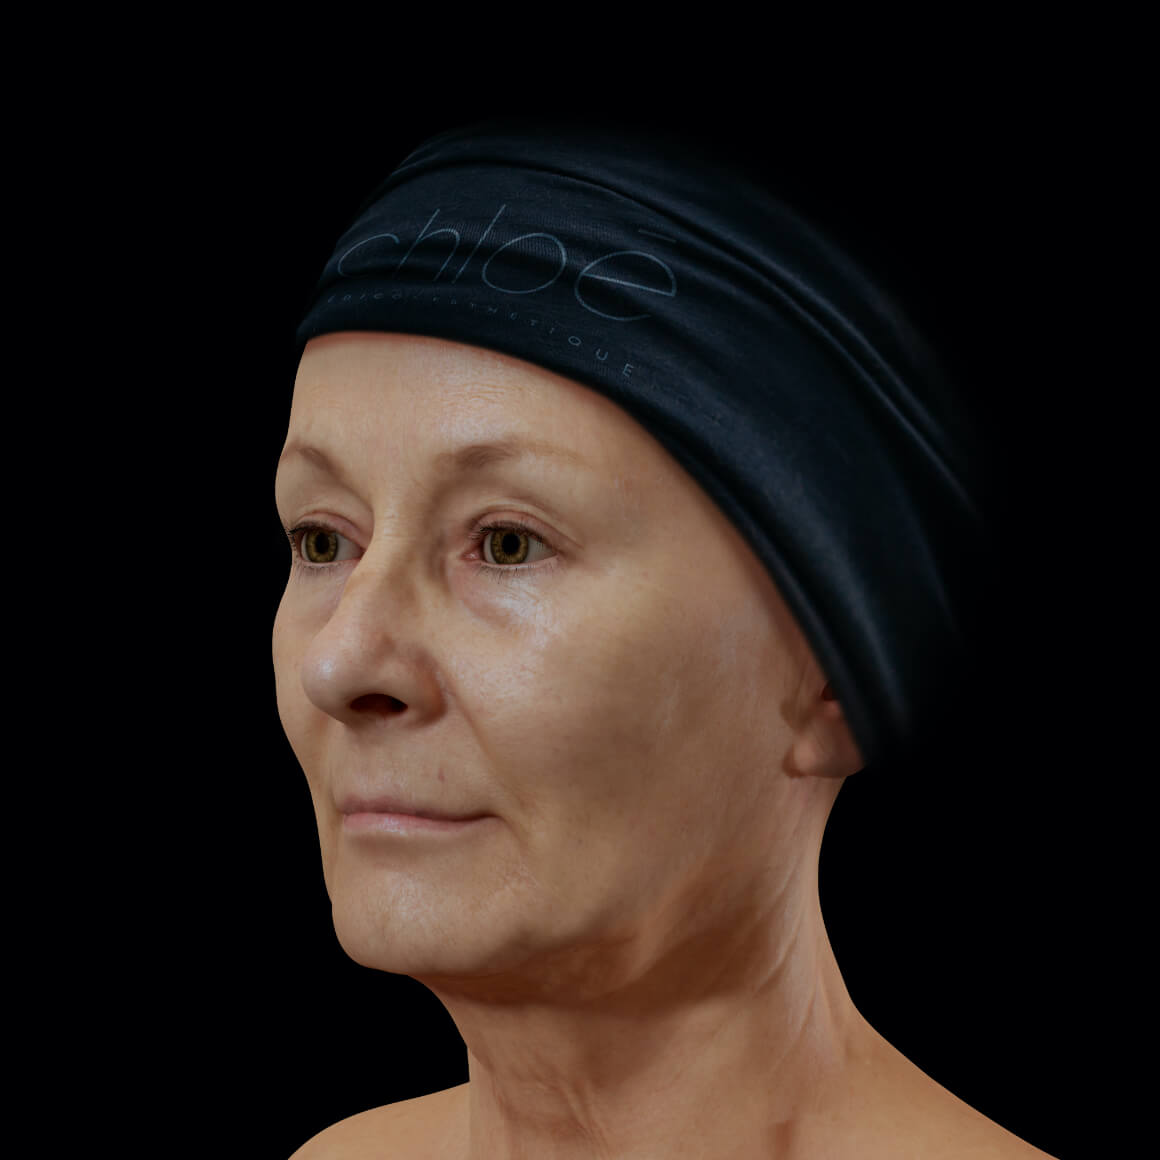 Female patient at Clinique Chloé positioned at an angle after fractional laser treatments for eyelid lift